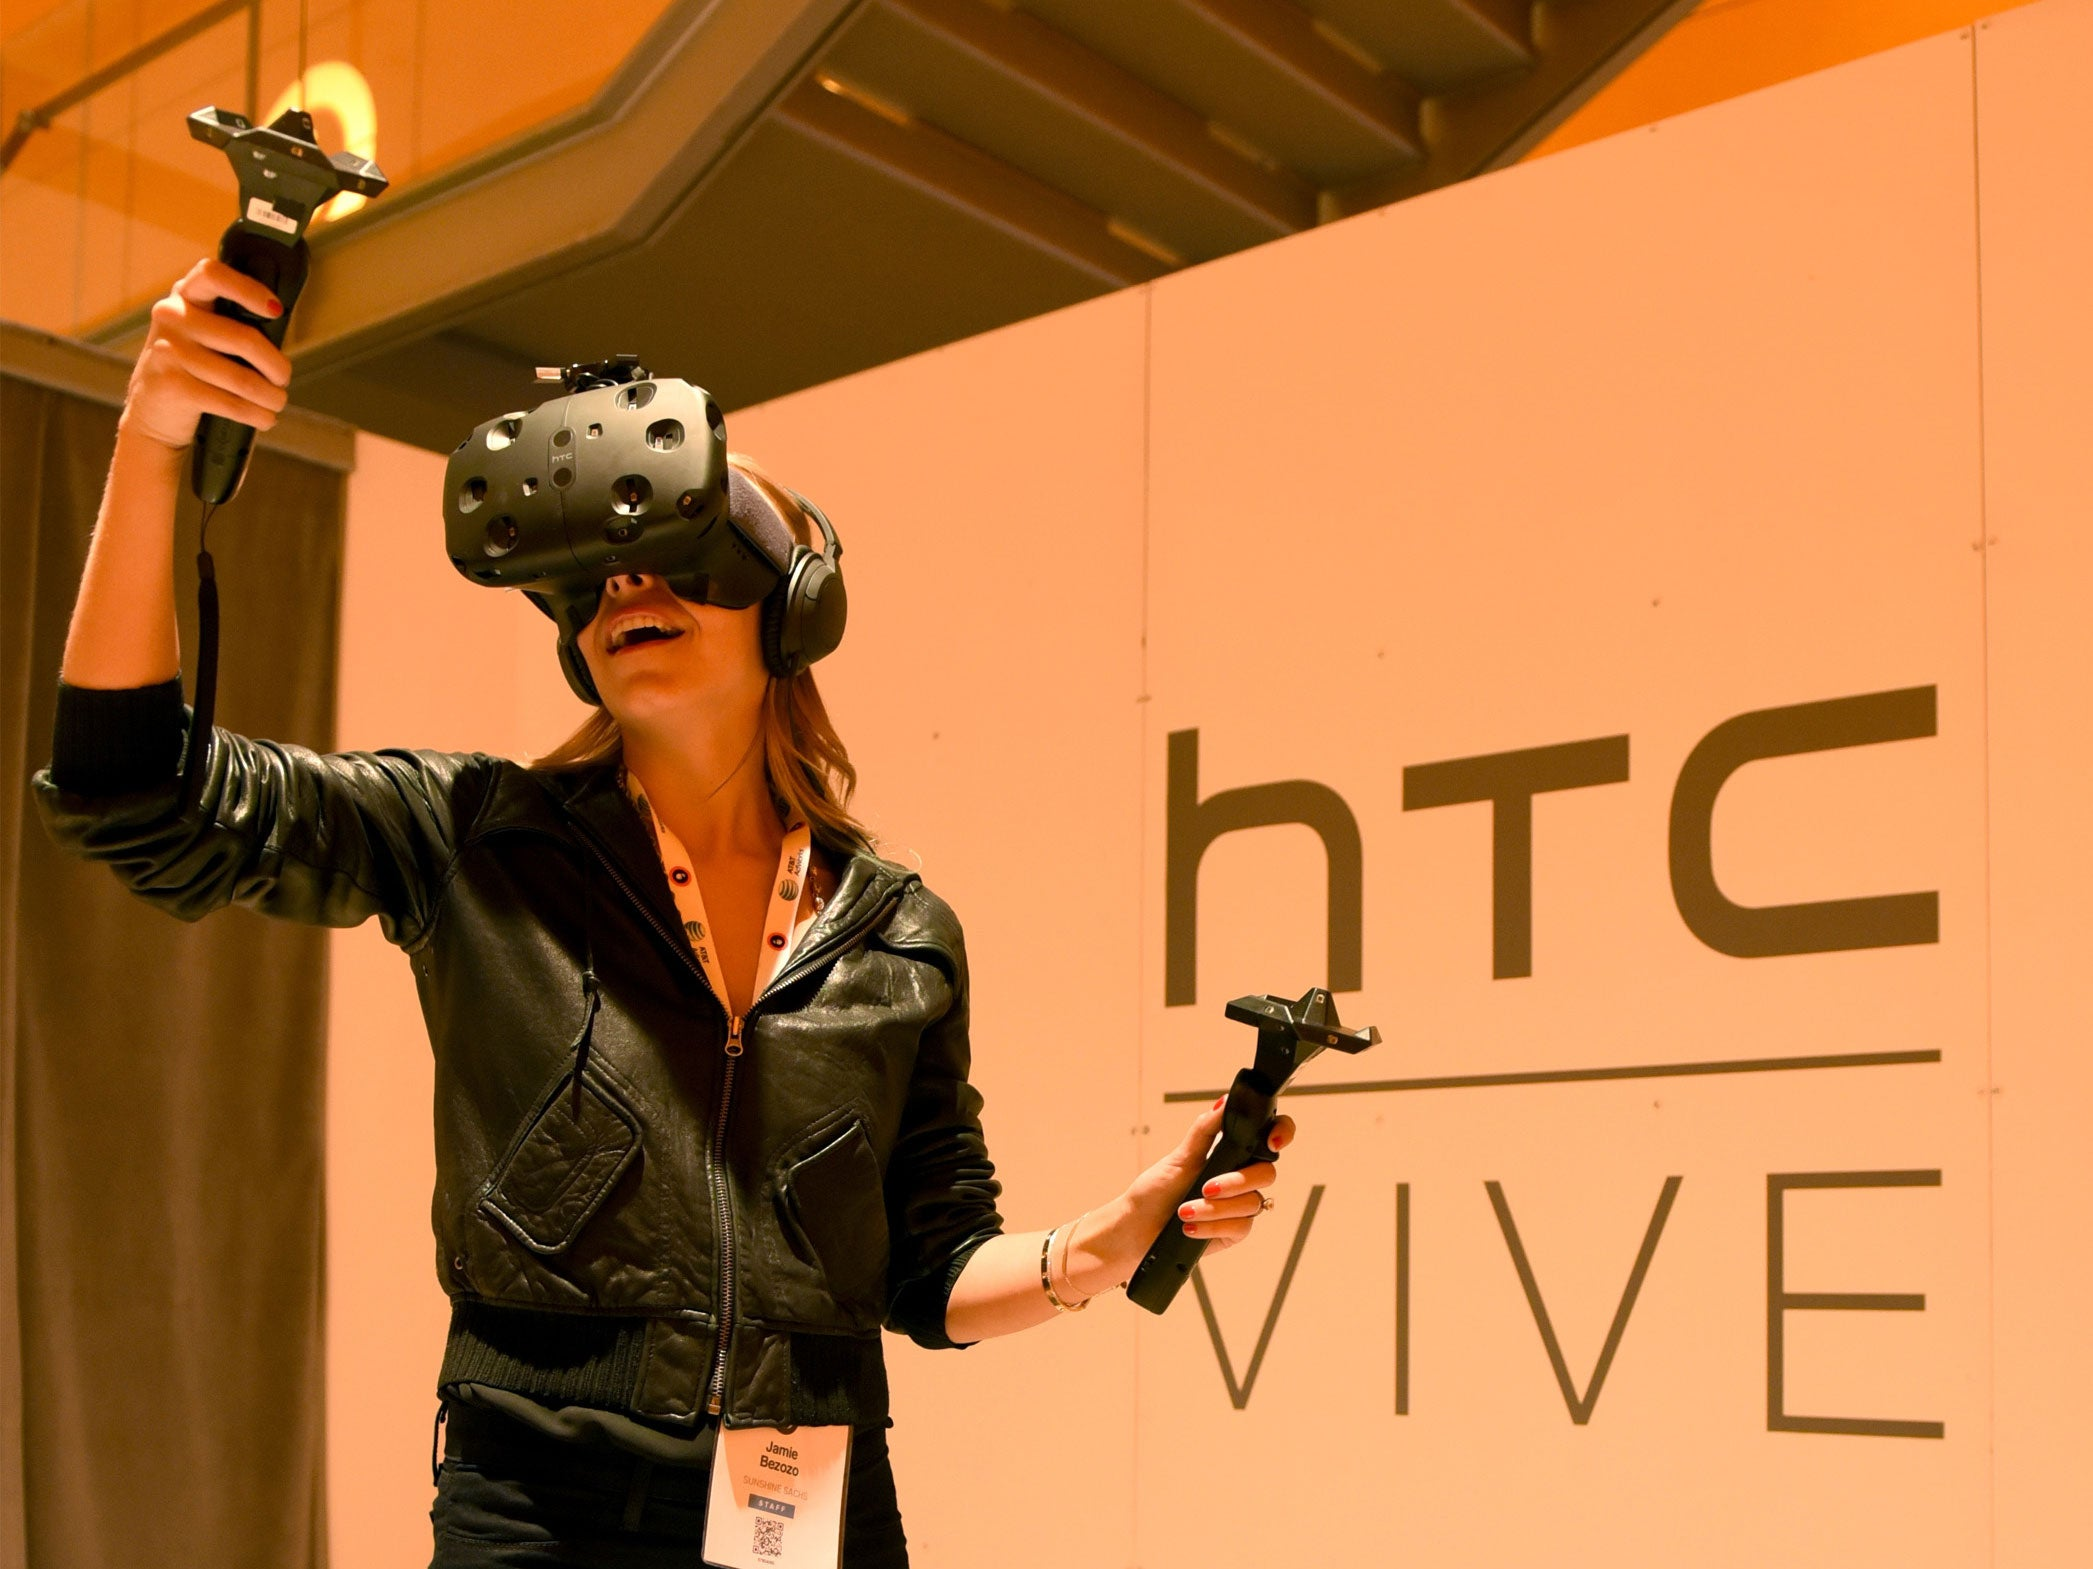 HTC Vive review: This immersive high-end headset is truly compelling | News | Lifestyle | The Independent